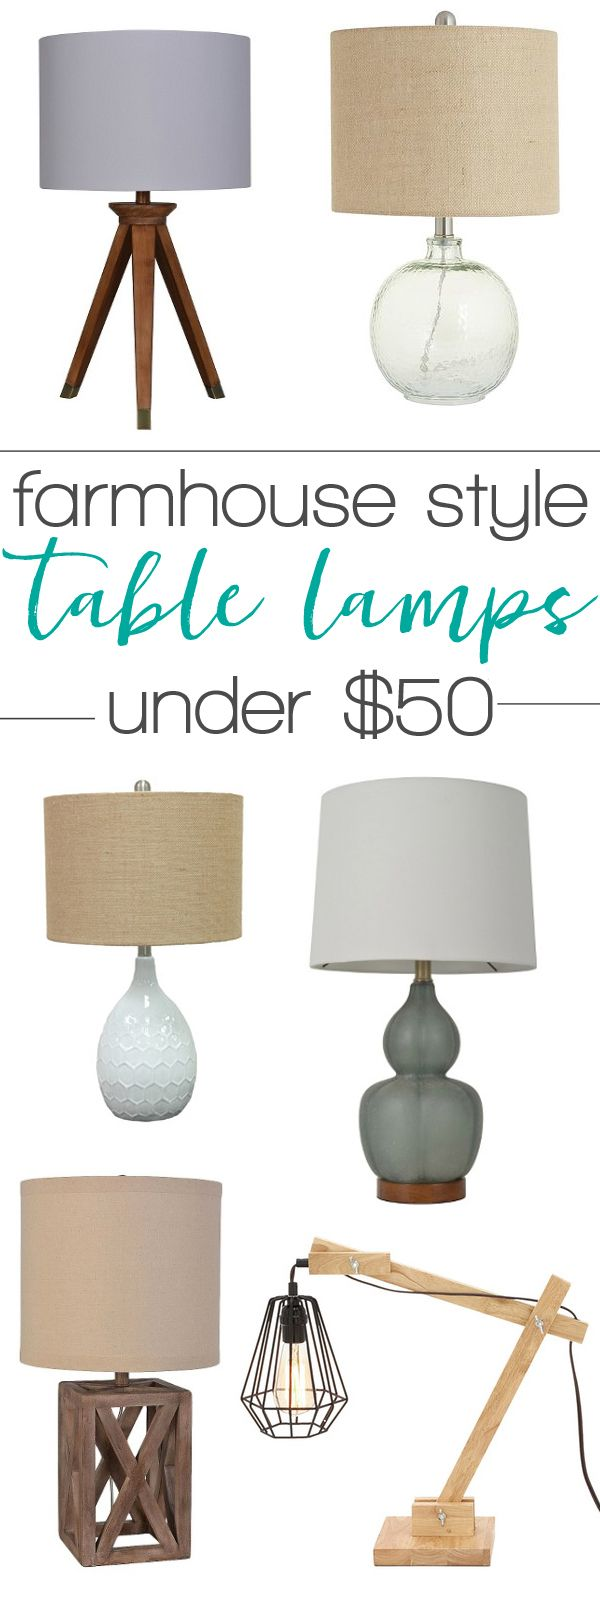 Farmhouse style lamps under 50 farmhouse style table farmhouse beautiful farmhouse style table lamps all under 50 great lighting ideas for the home mozeypictures Image collections